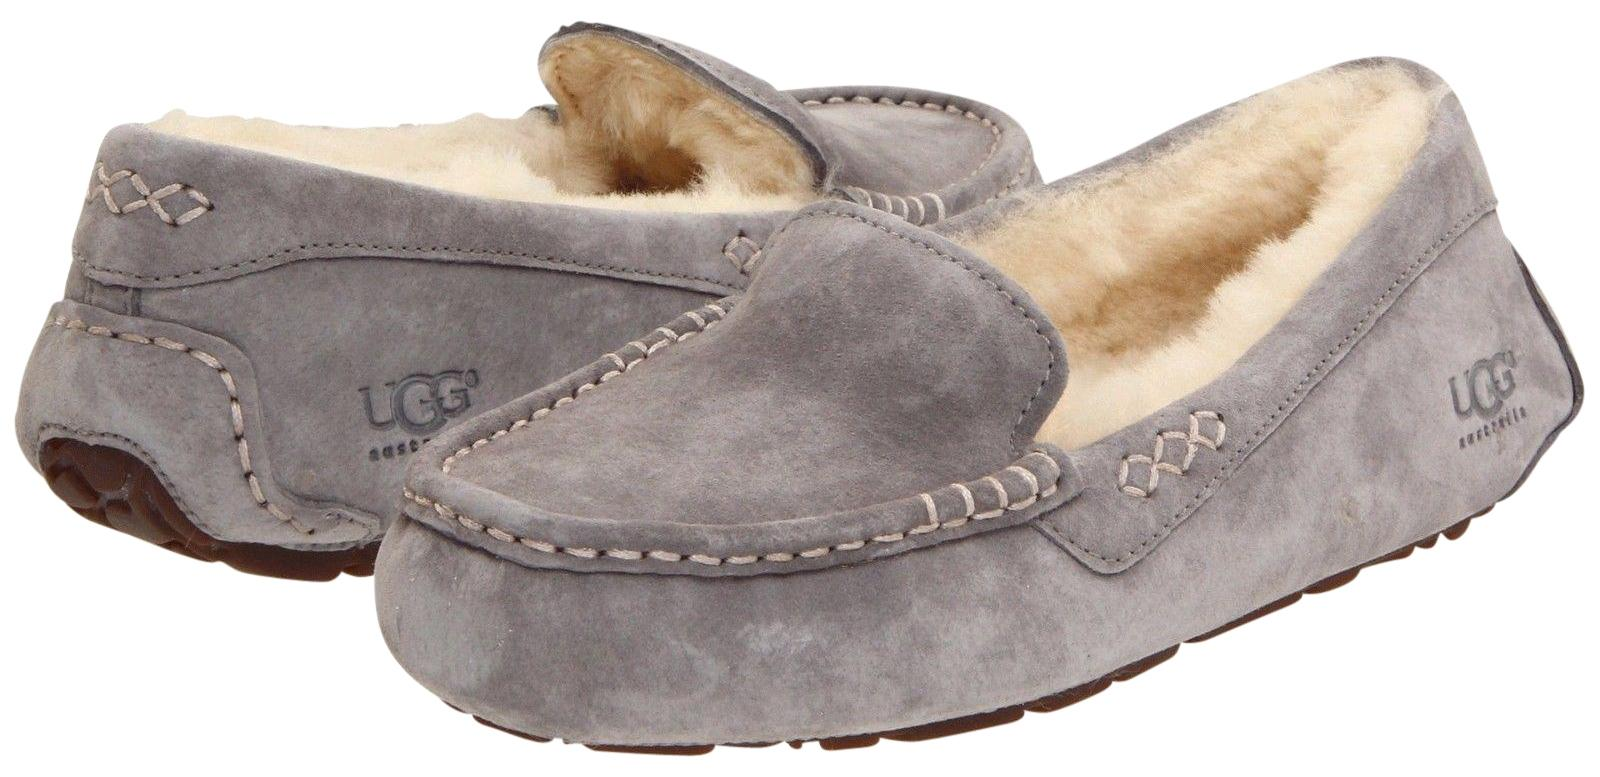 UGG Australia For Her 3312 Size 7 Light Grey Boots ...